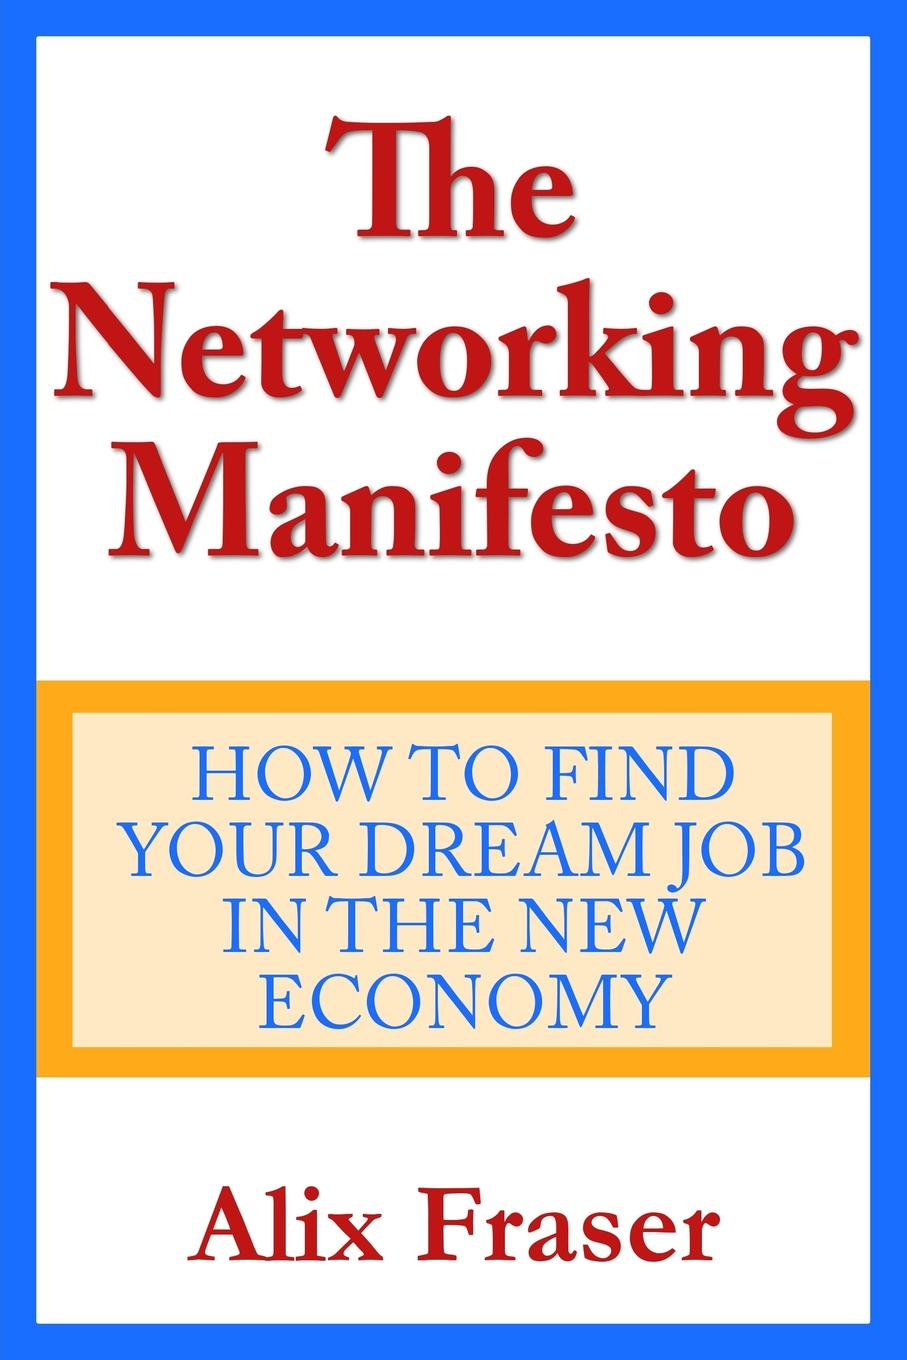 Alix Fraser The Networking Manifesto. How to Find Your Dream Job in the New bill hughes getting a networking job for dummies isbn 9781119016236